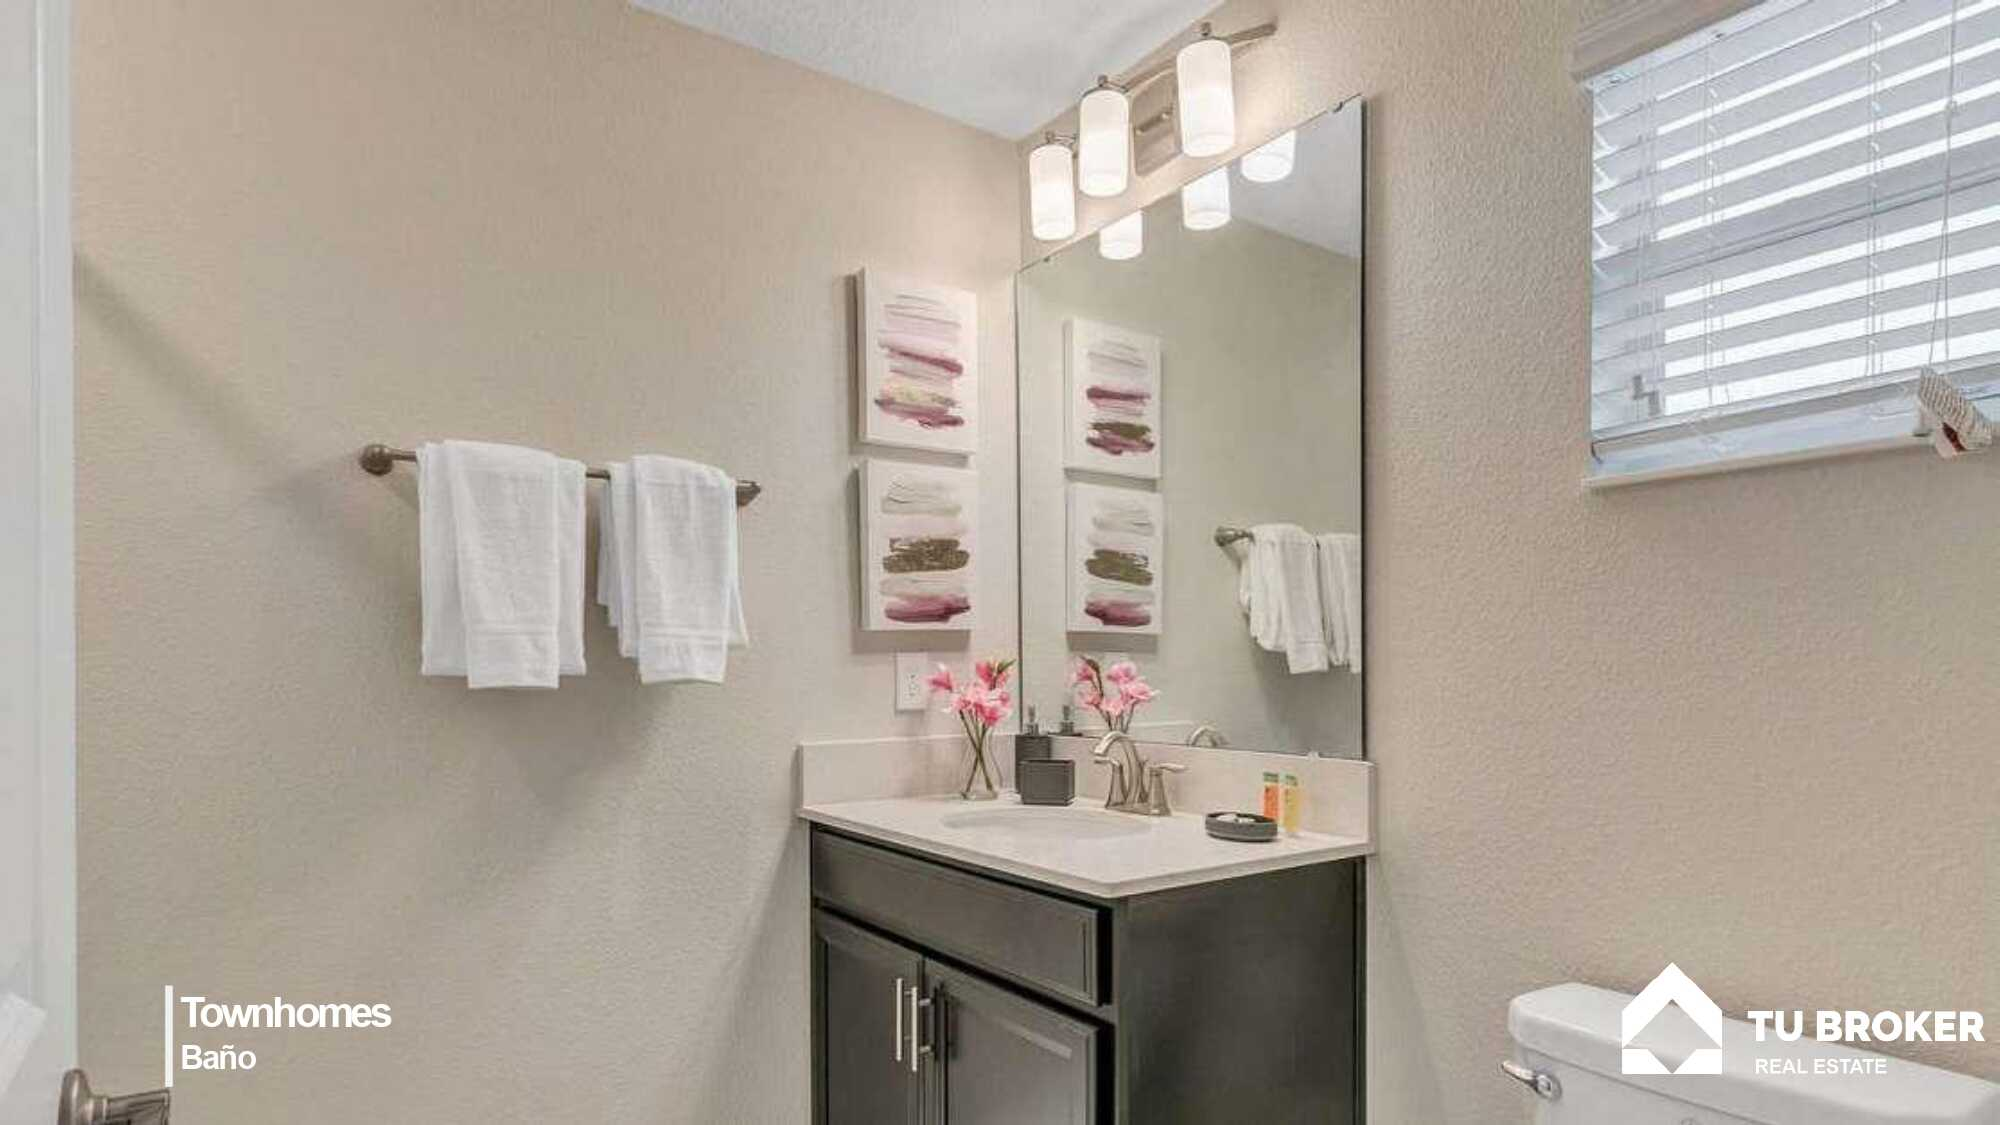 pag-orla-sl-townhomes_compressed-1_page-0029_optimized